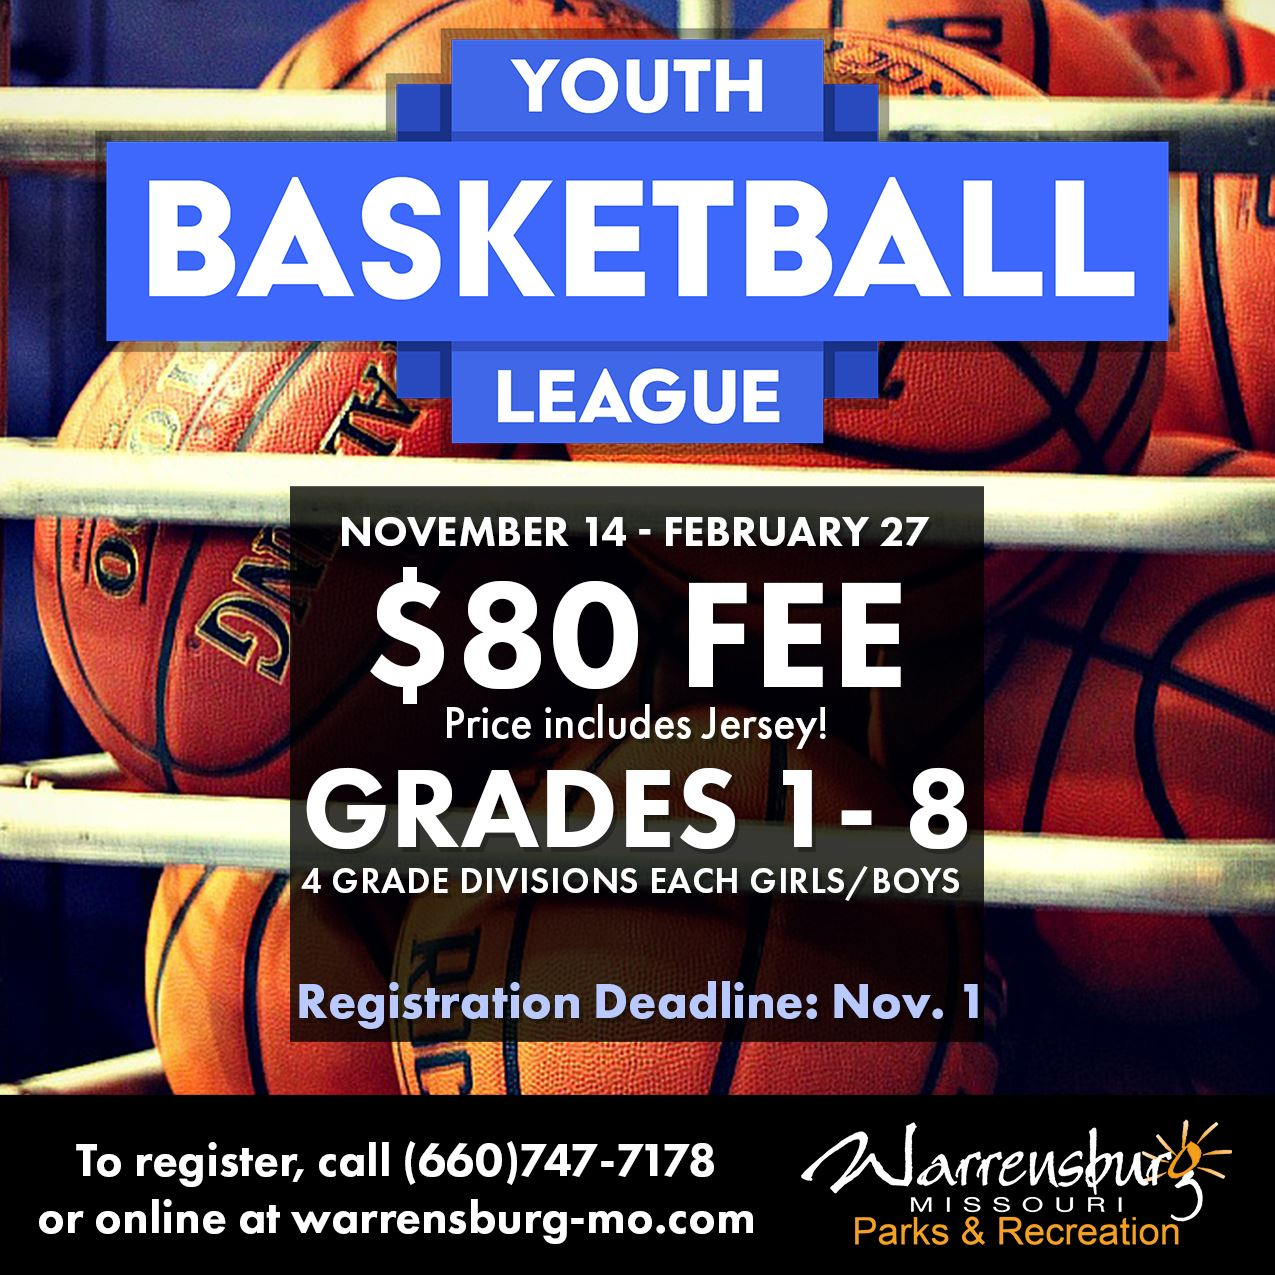 Youth Basketball Web 2020 ver. 2